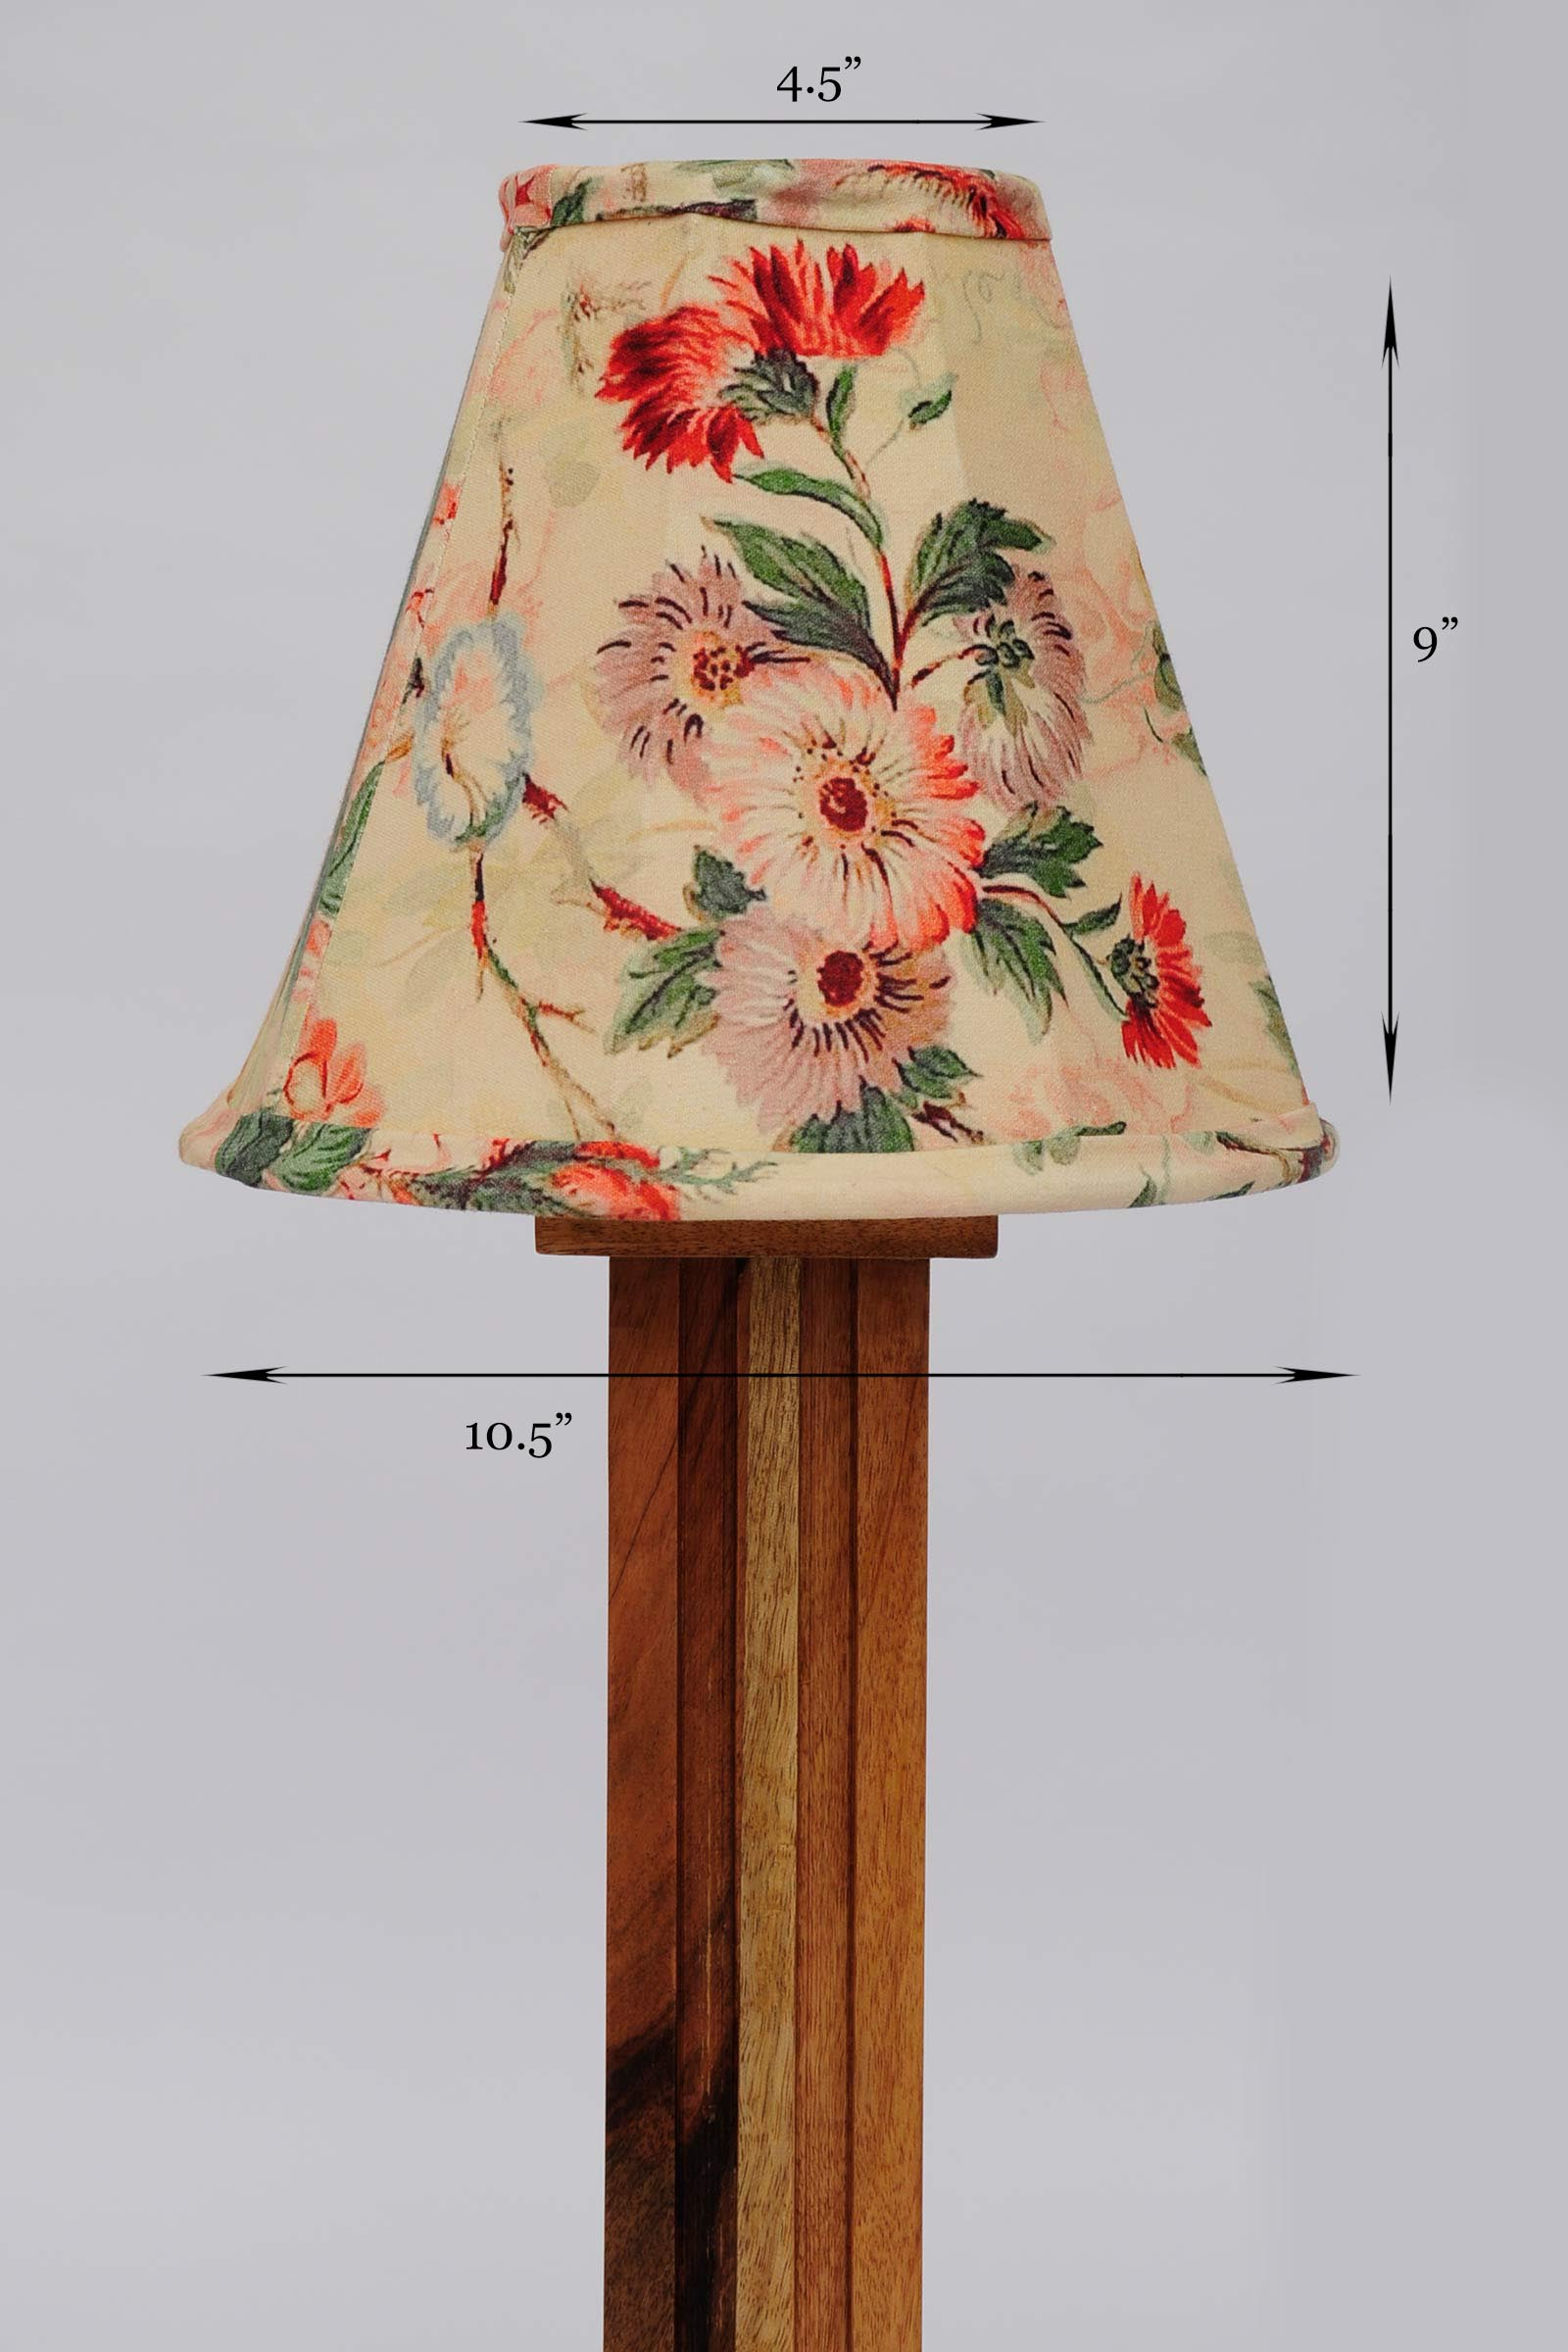 Opera House Small Lamp Shade